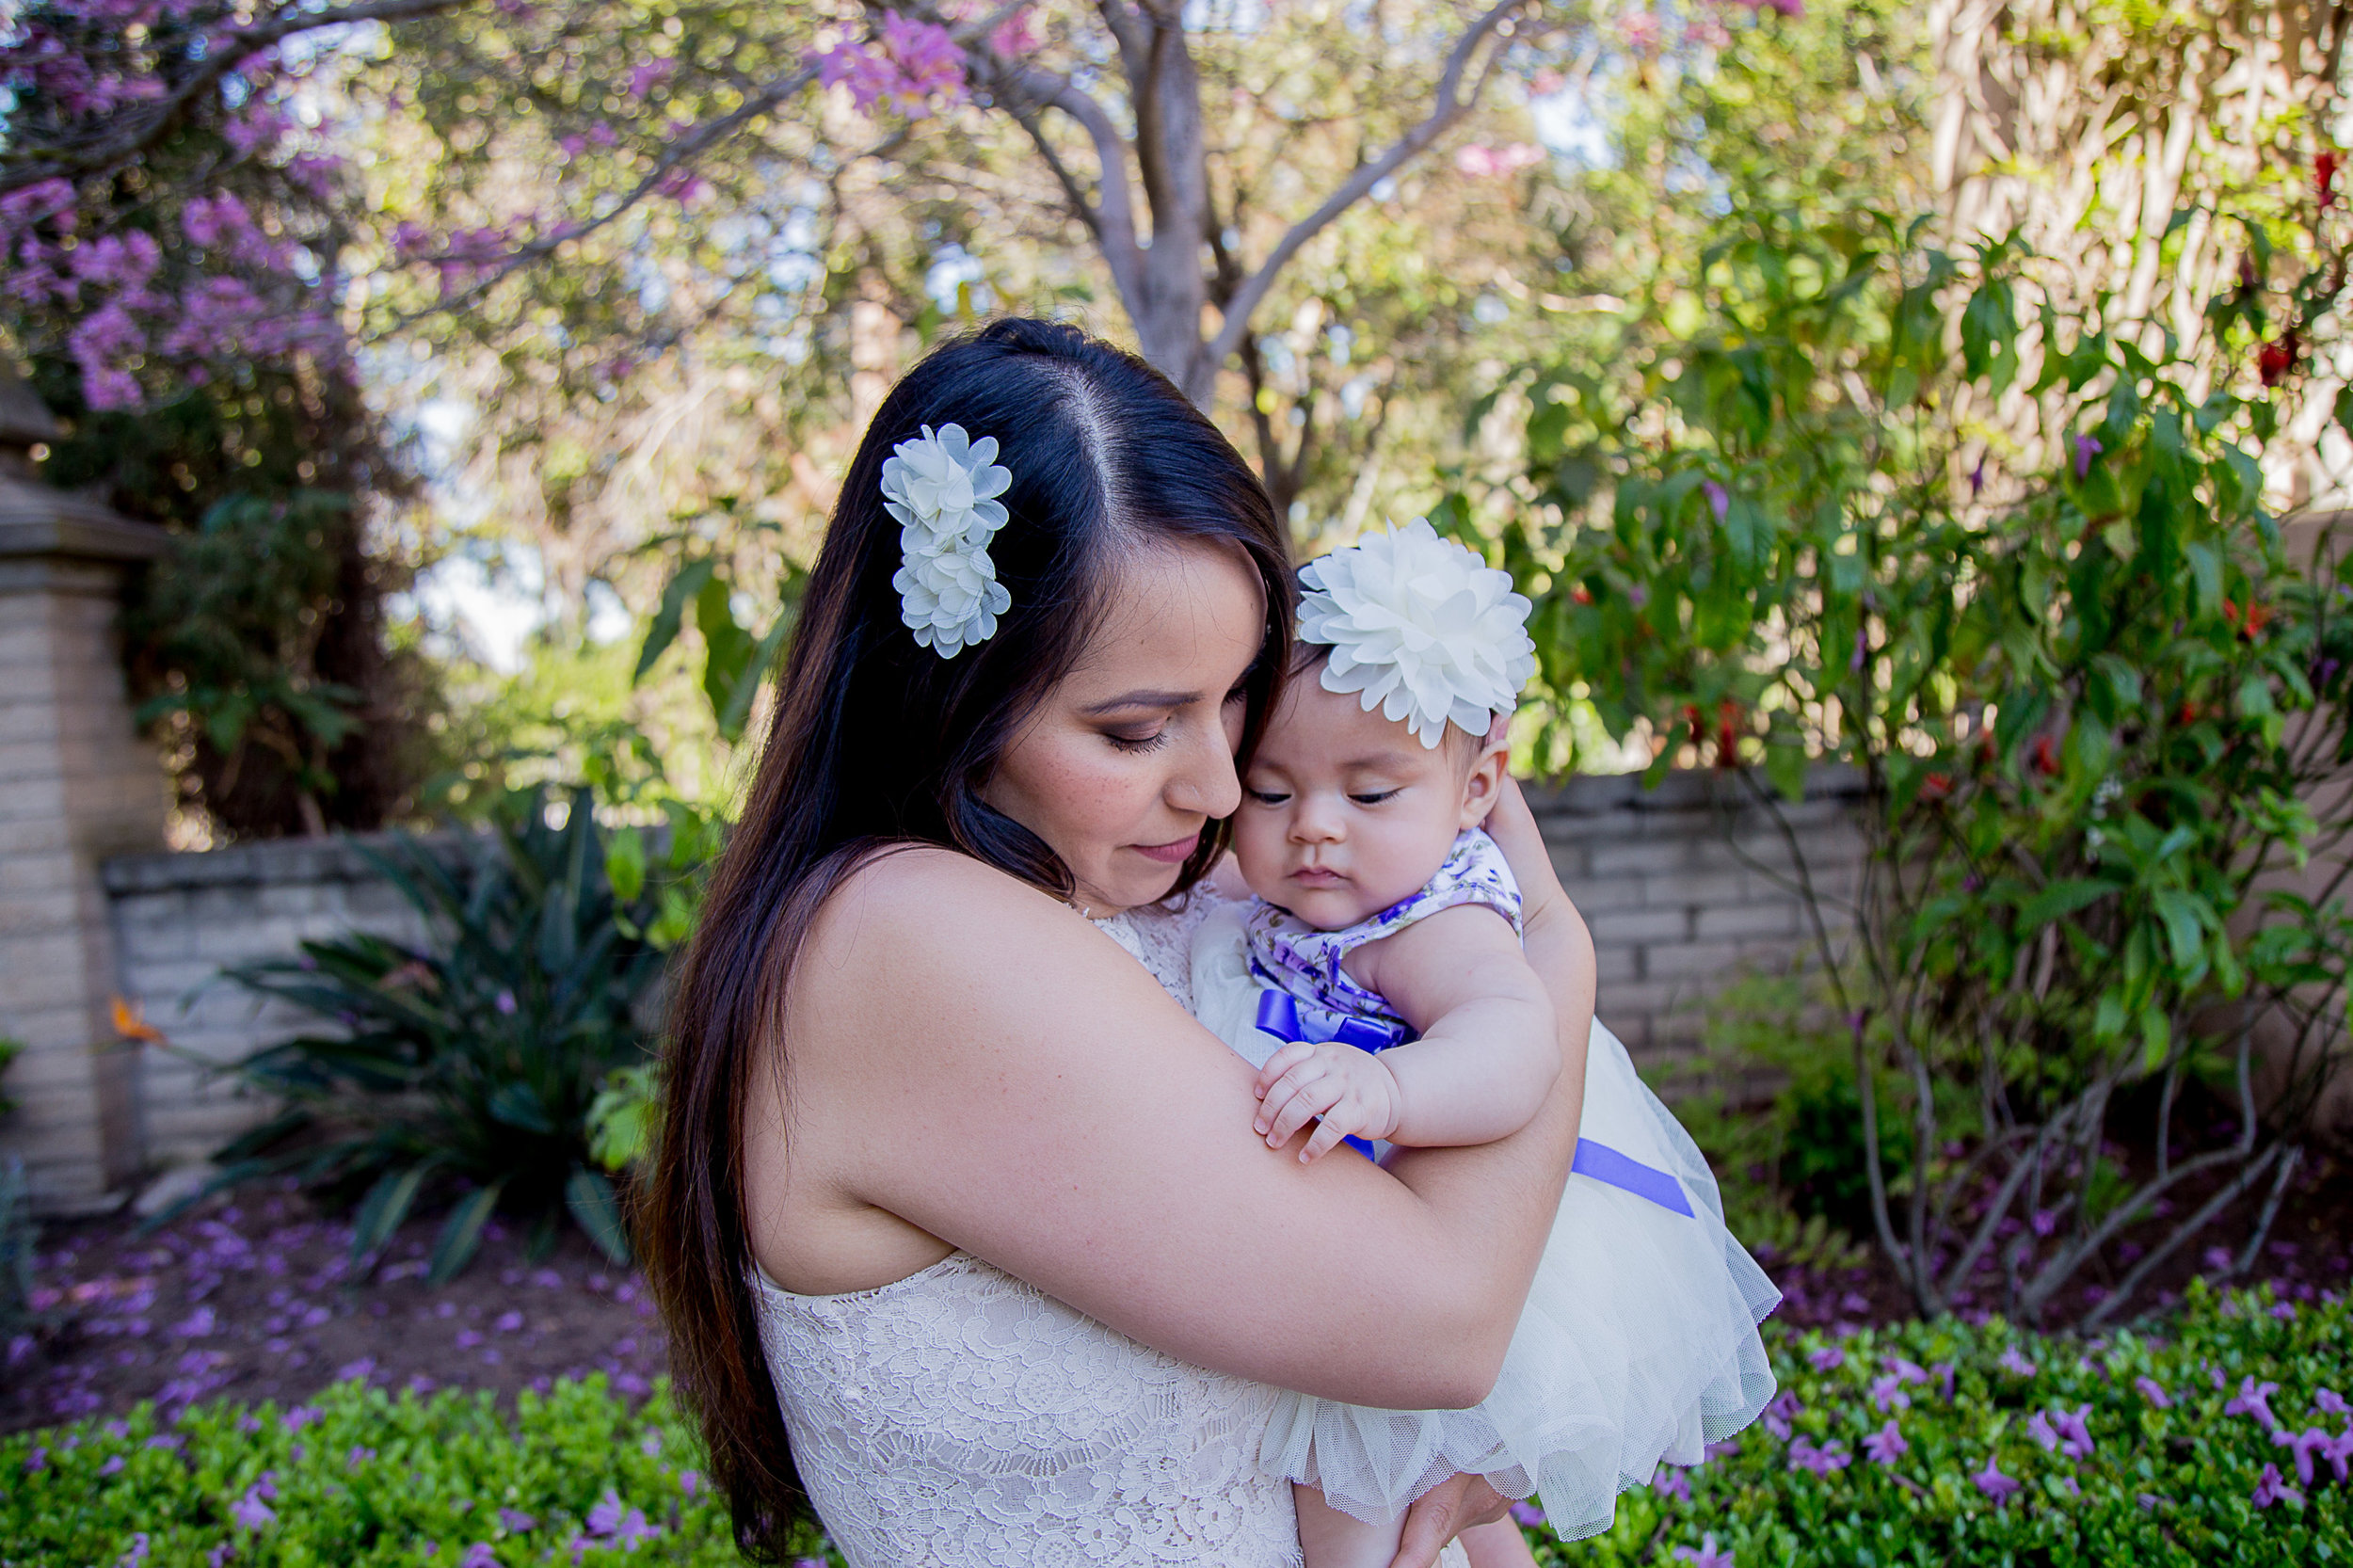 mommy-and-me-balboa-park-wild-flowers-spring (70 of 136).jpg